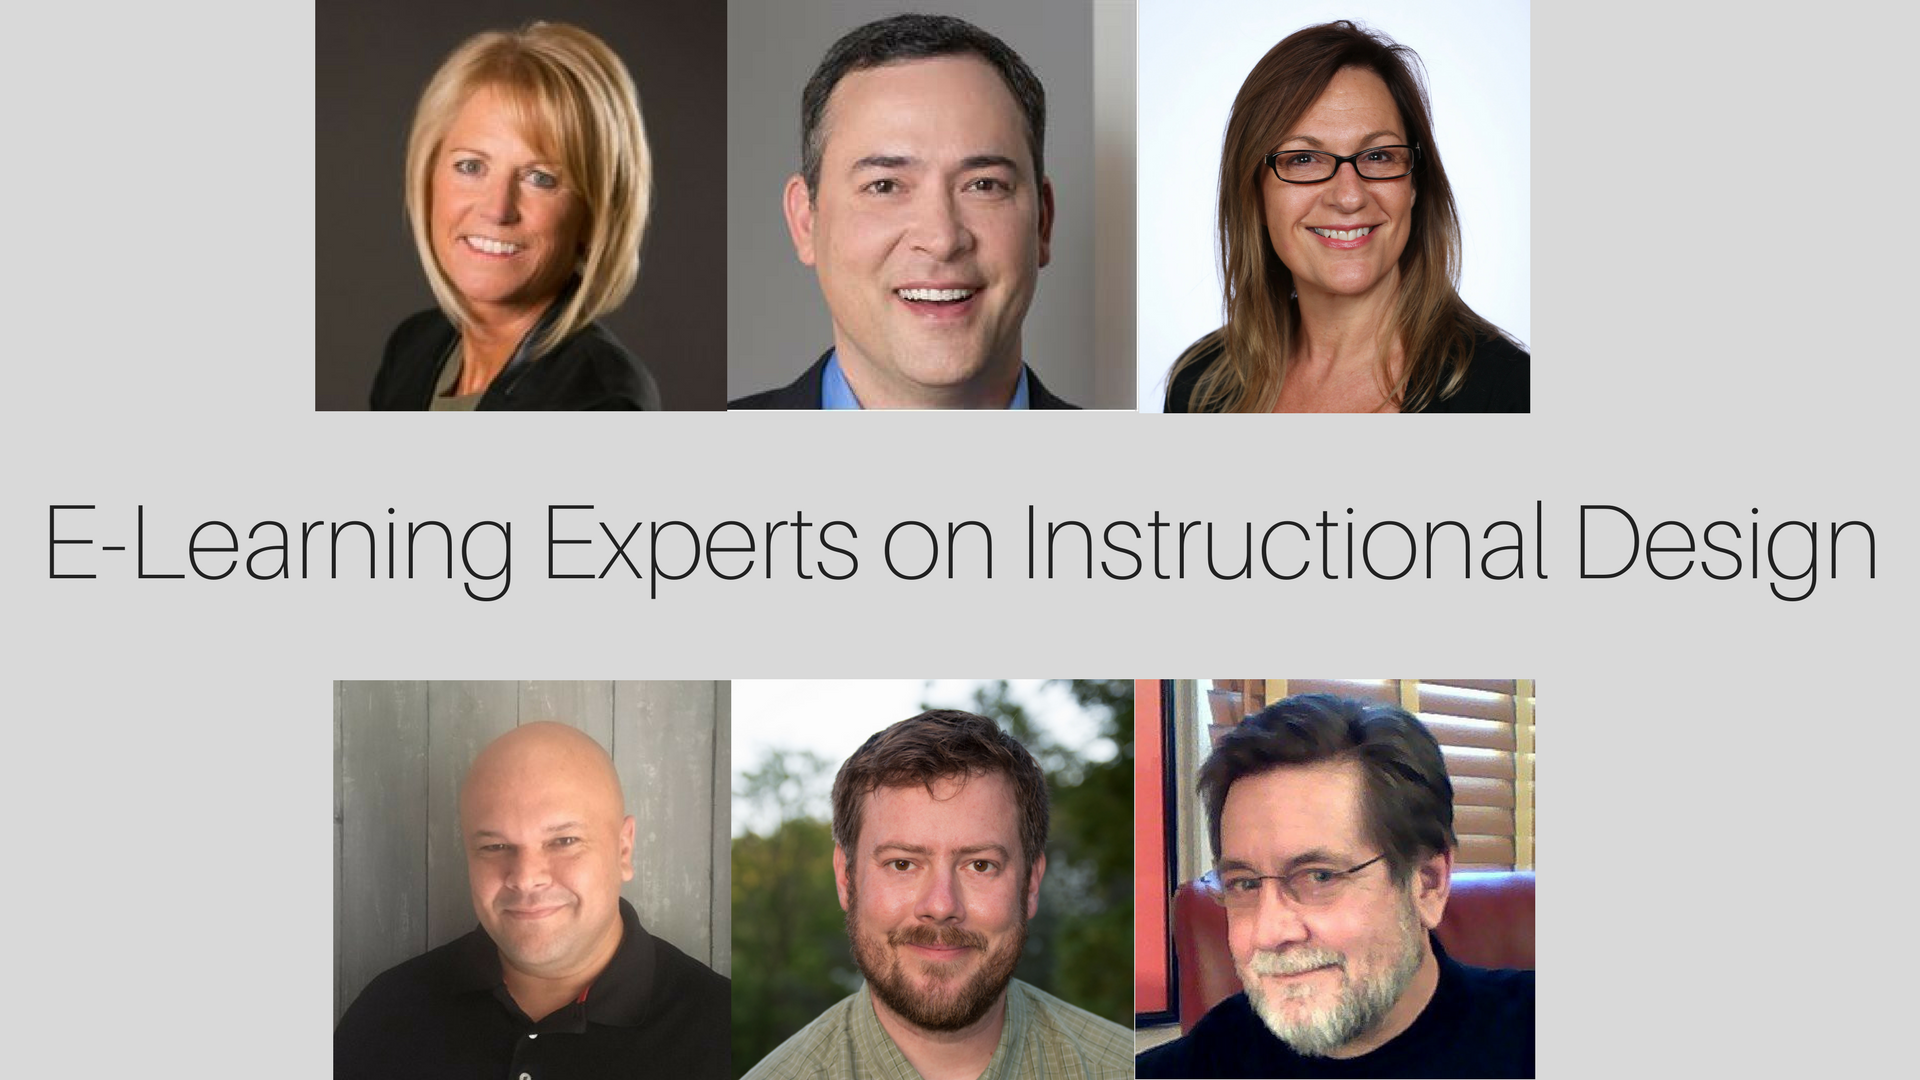 E Learning Experts On Instructional Design By Zipboard Zipboard